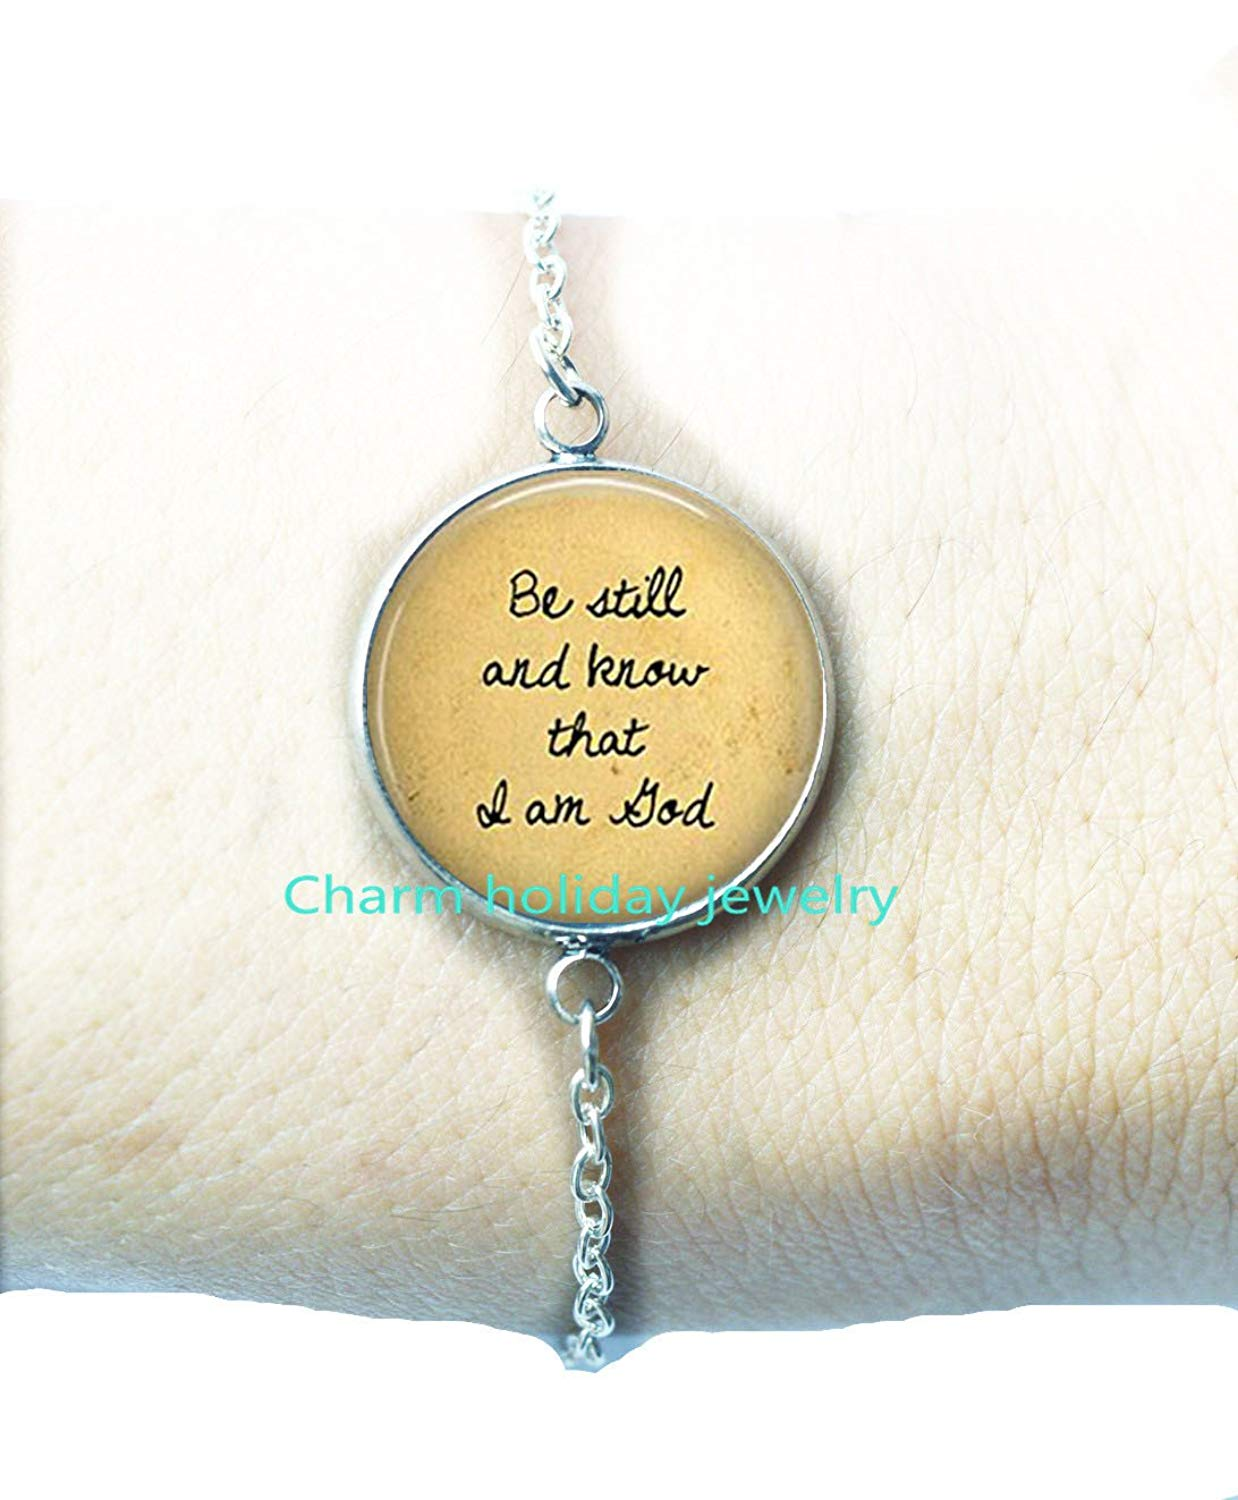 Religious Bracelets Bracelet Be Still and Know That I Am God Faith Charms.D0085 Religious Jewelry Faith Jewelry